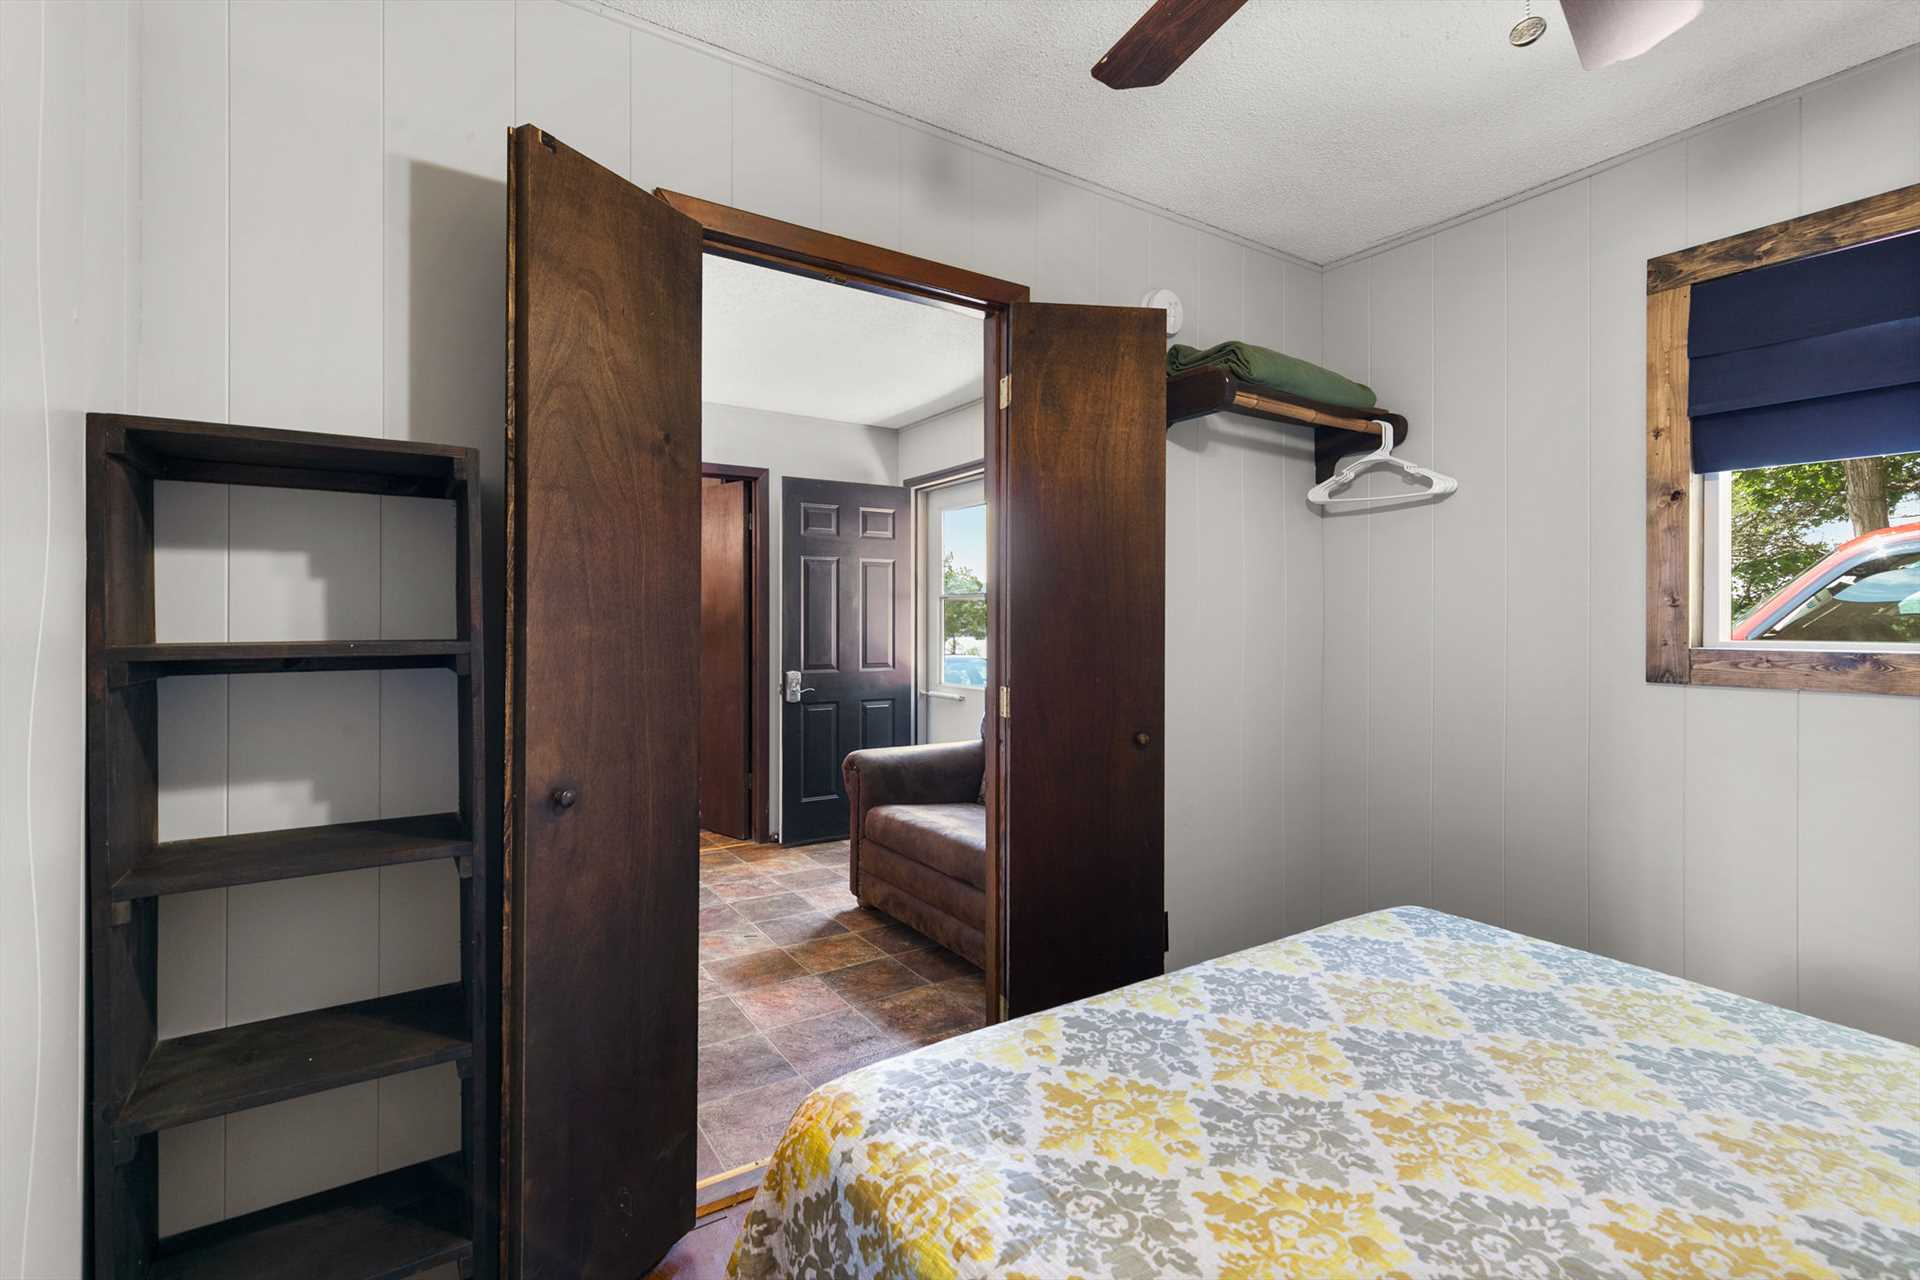 There is ample storage in the second bedroom. (Cabin 11)